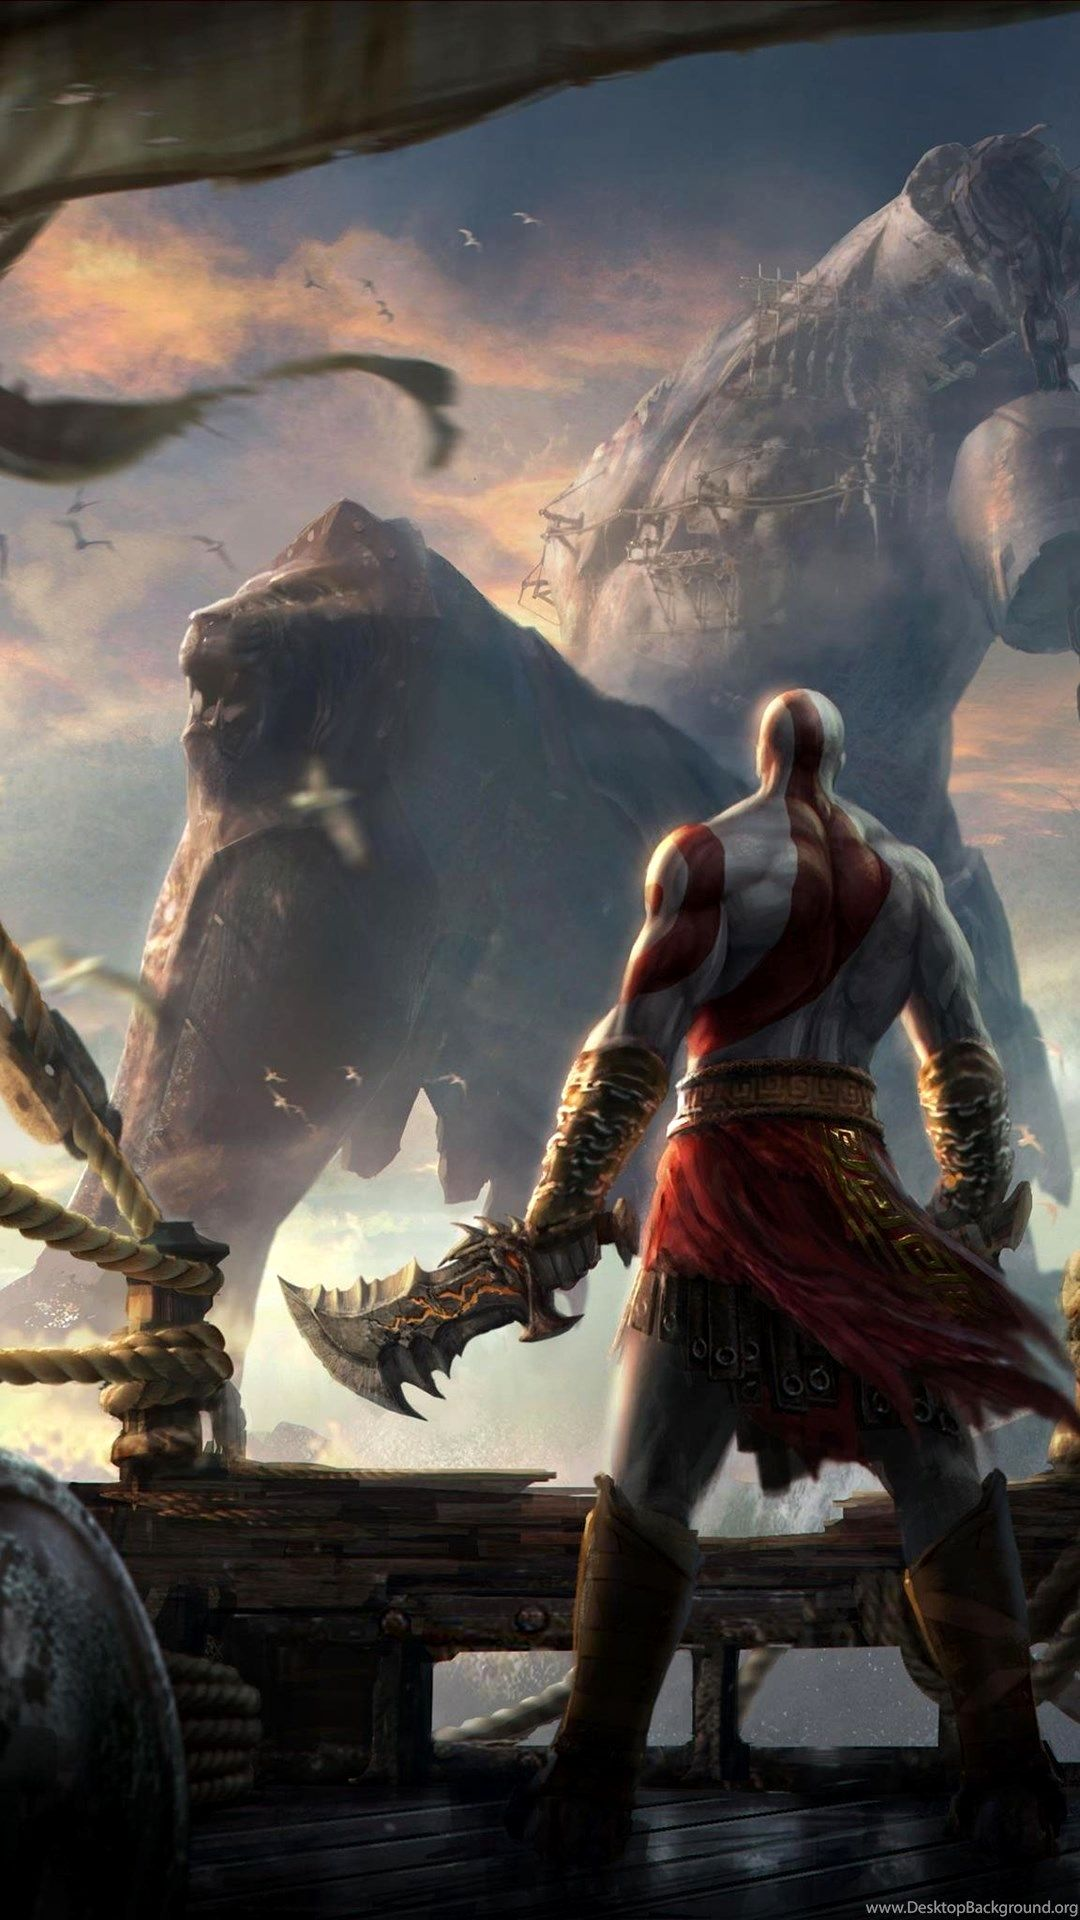 God Of War Wallpaper 4k Mobile Gallery Em 2020 Gods Of War